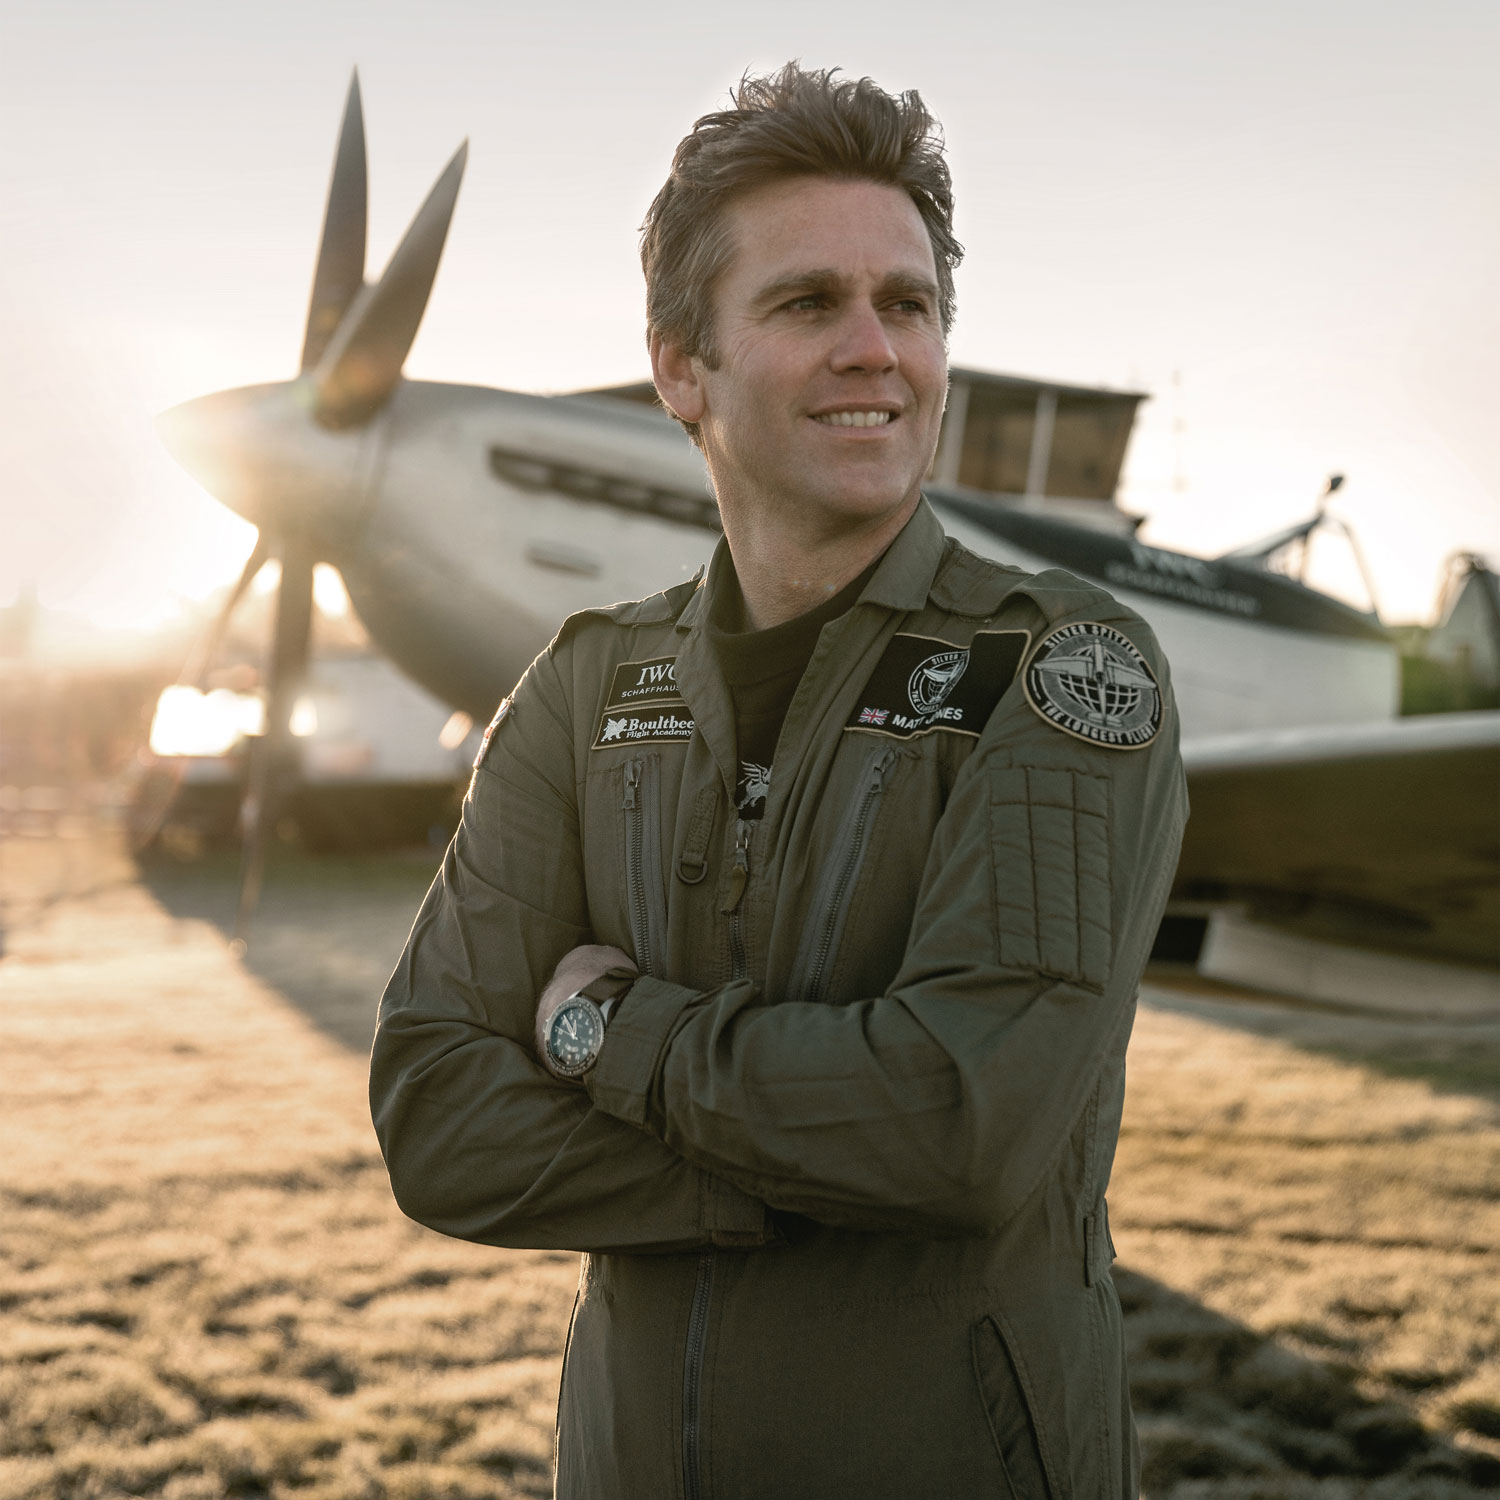 Matt Jones, pilot and co-founder of the Boultbee Flight Academy